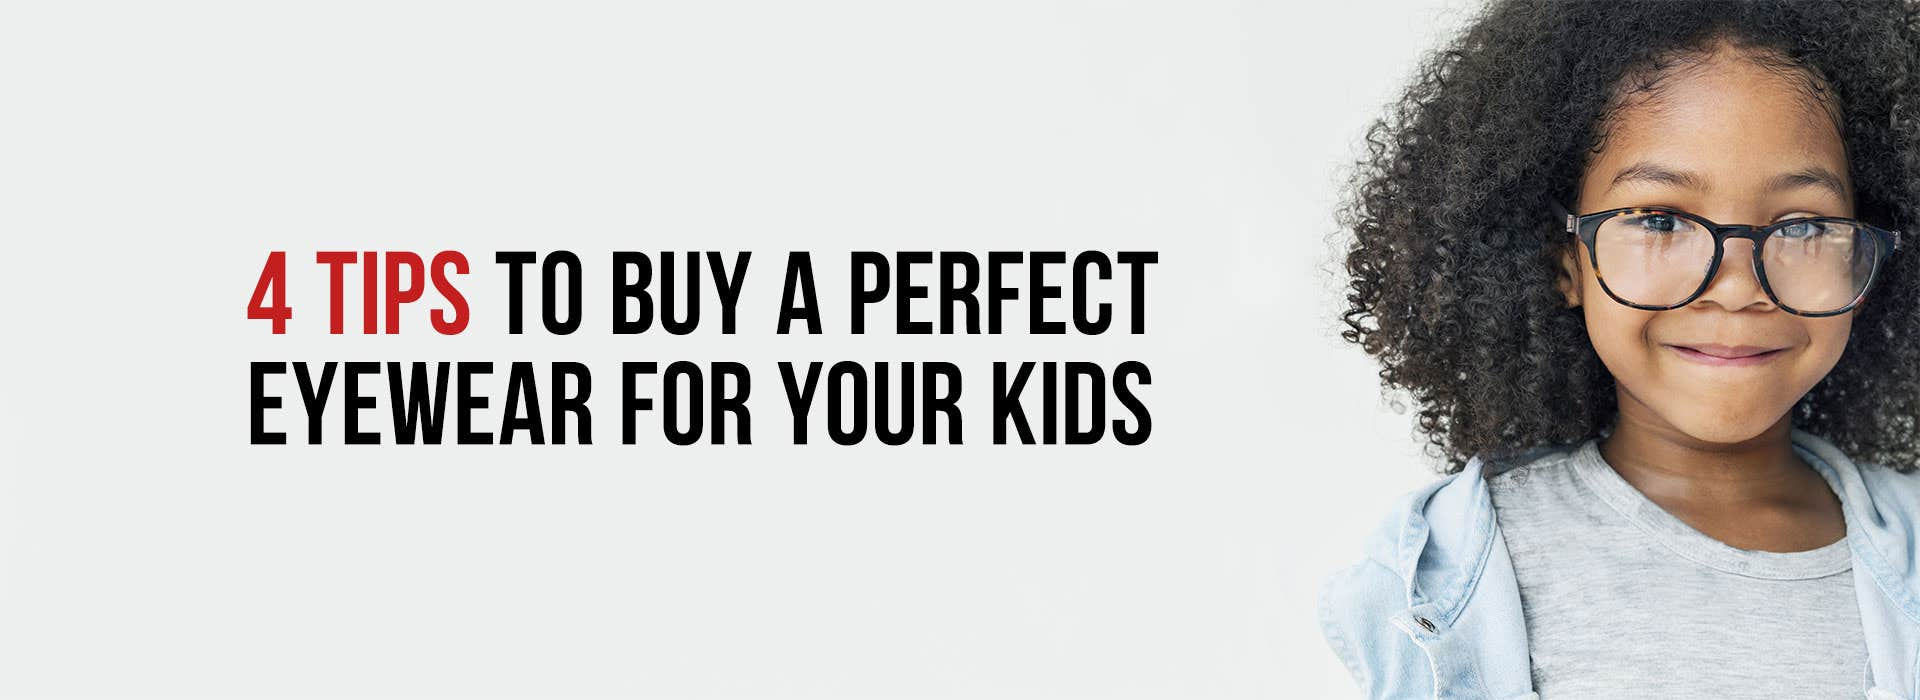 4 Tips To Buy A Perfect Eyewear For Your Kids